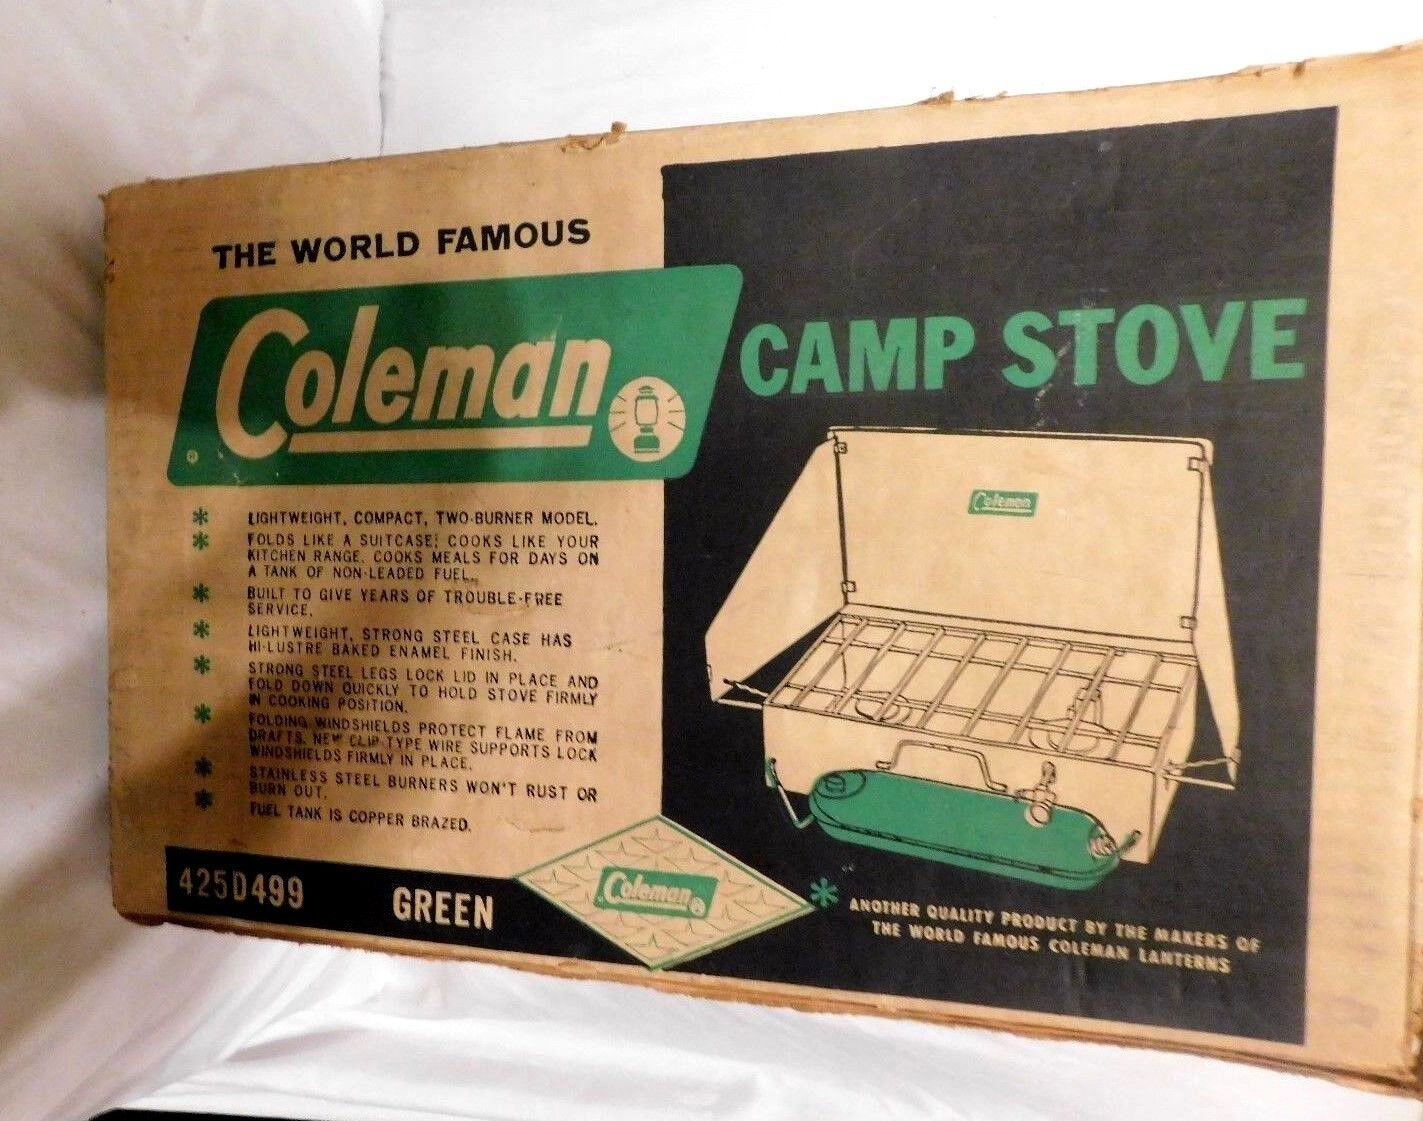 Vintage Coleman Camp Stove 425D499 Green With Box